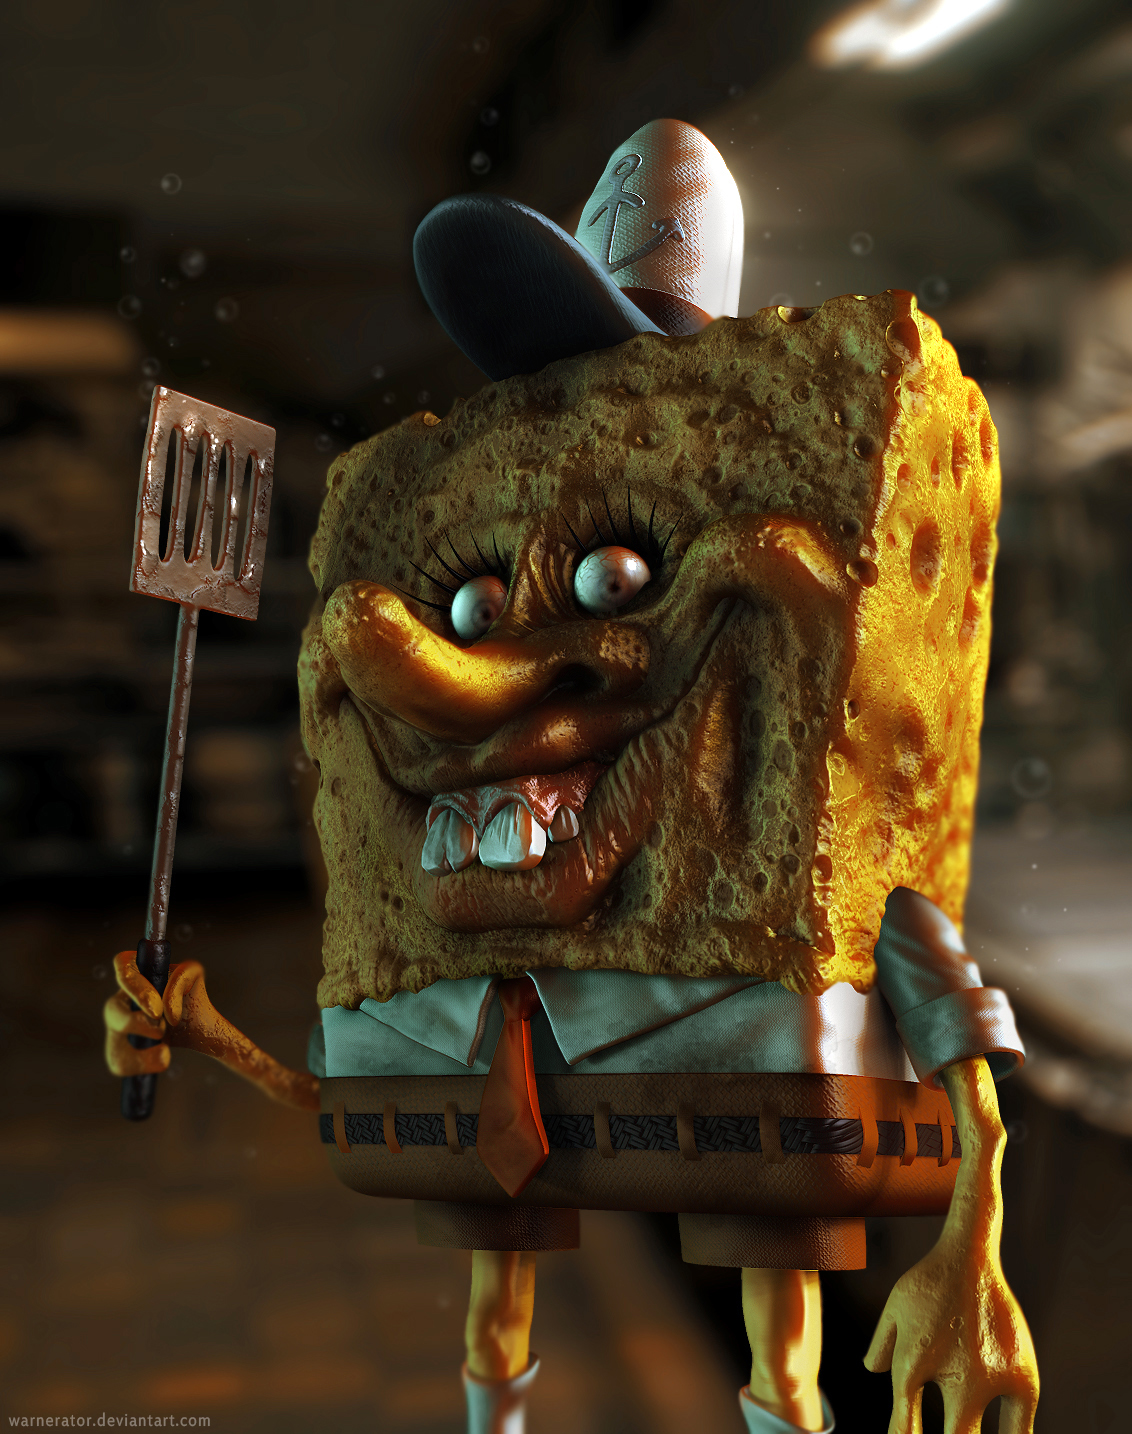 Spongebob Sparepants by Bawarner